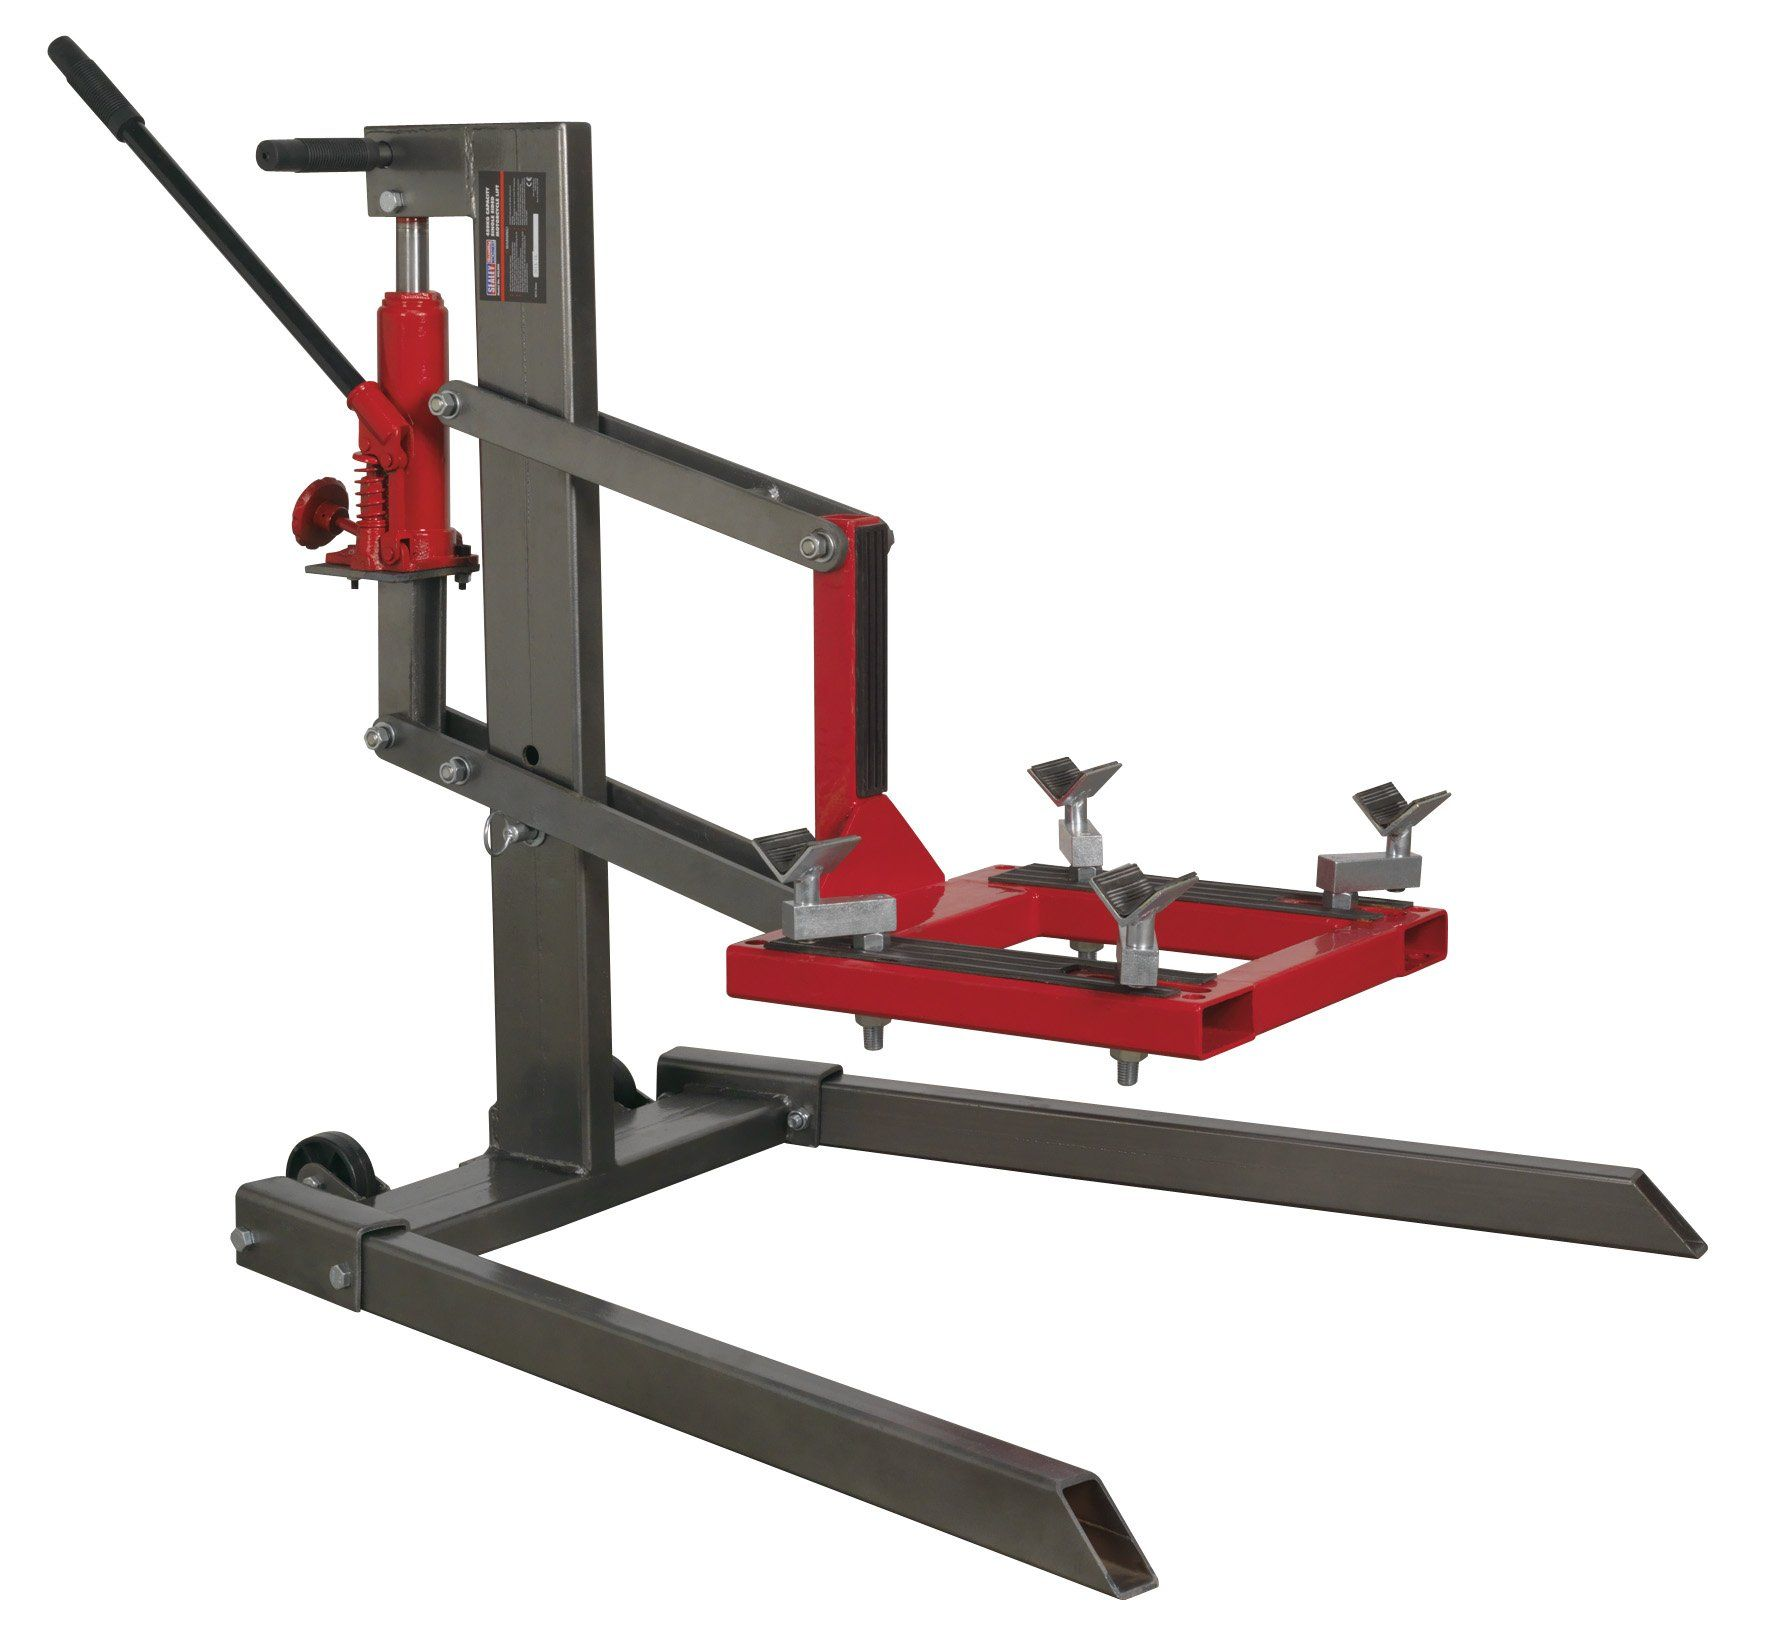 Sealey Tools Mcl500 Single Post Motorcycle Lift 450kg